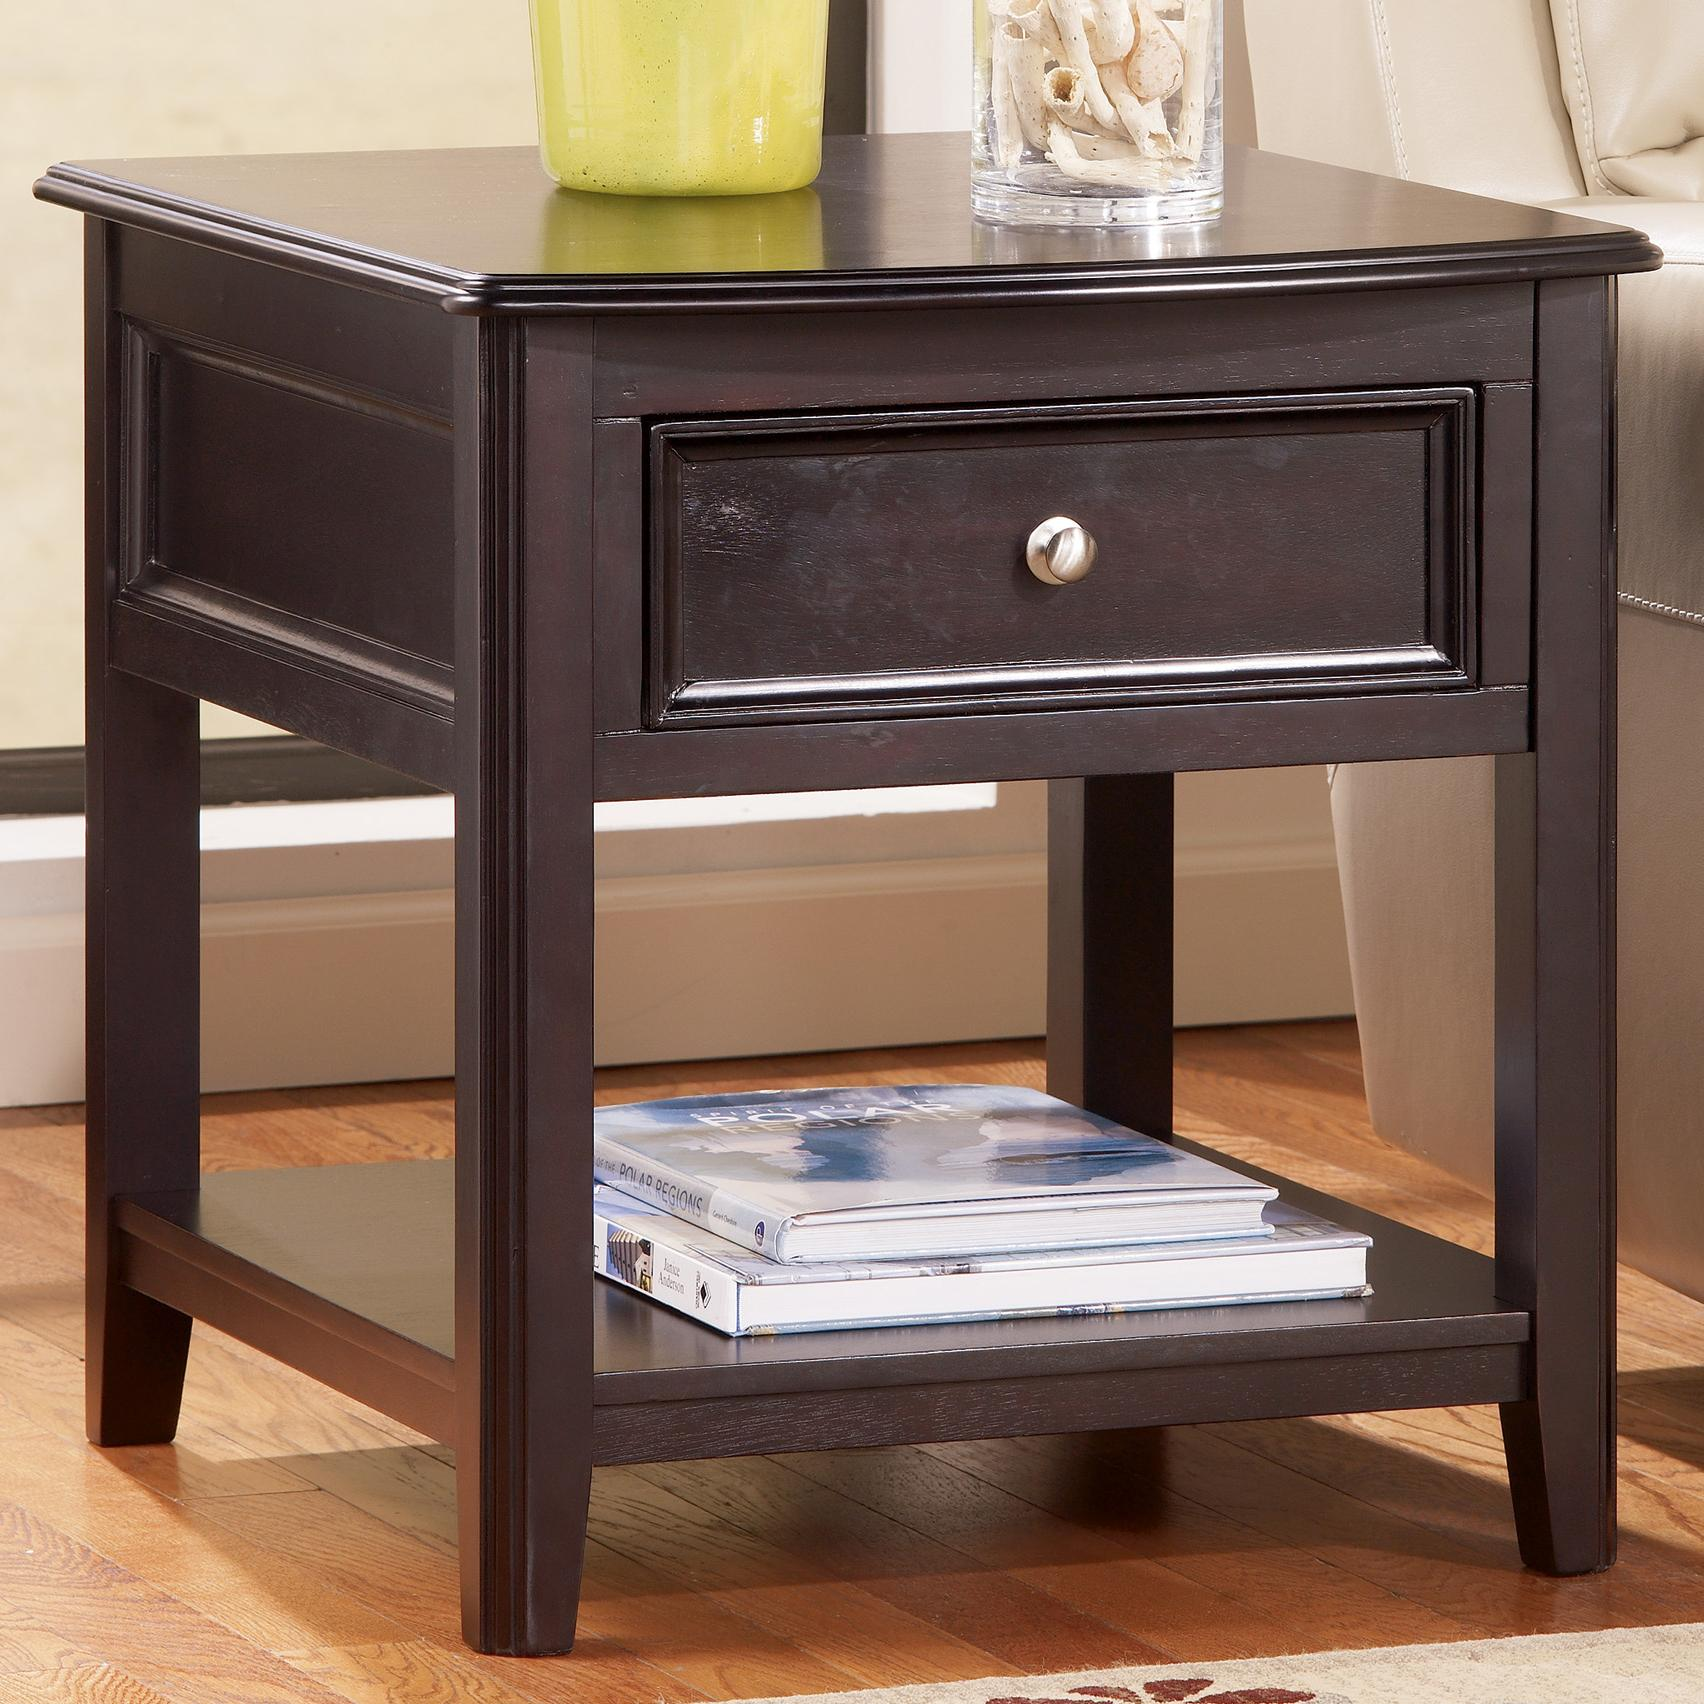 Rectangular End Table with Drawer and Bottom Shelf by